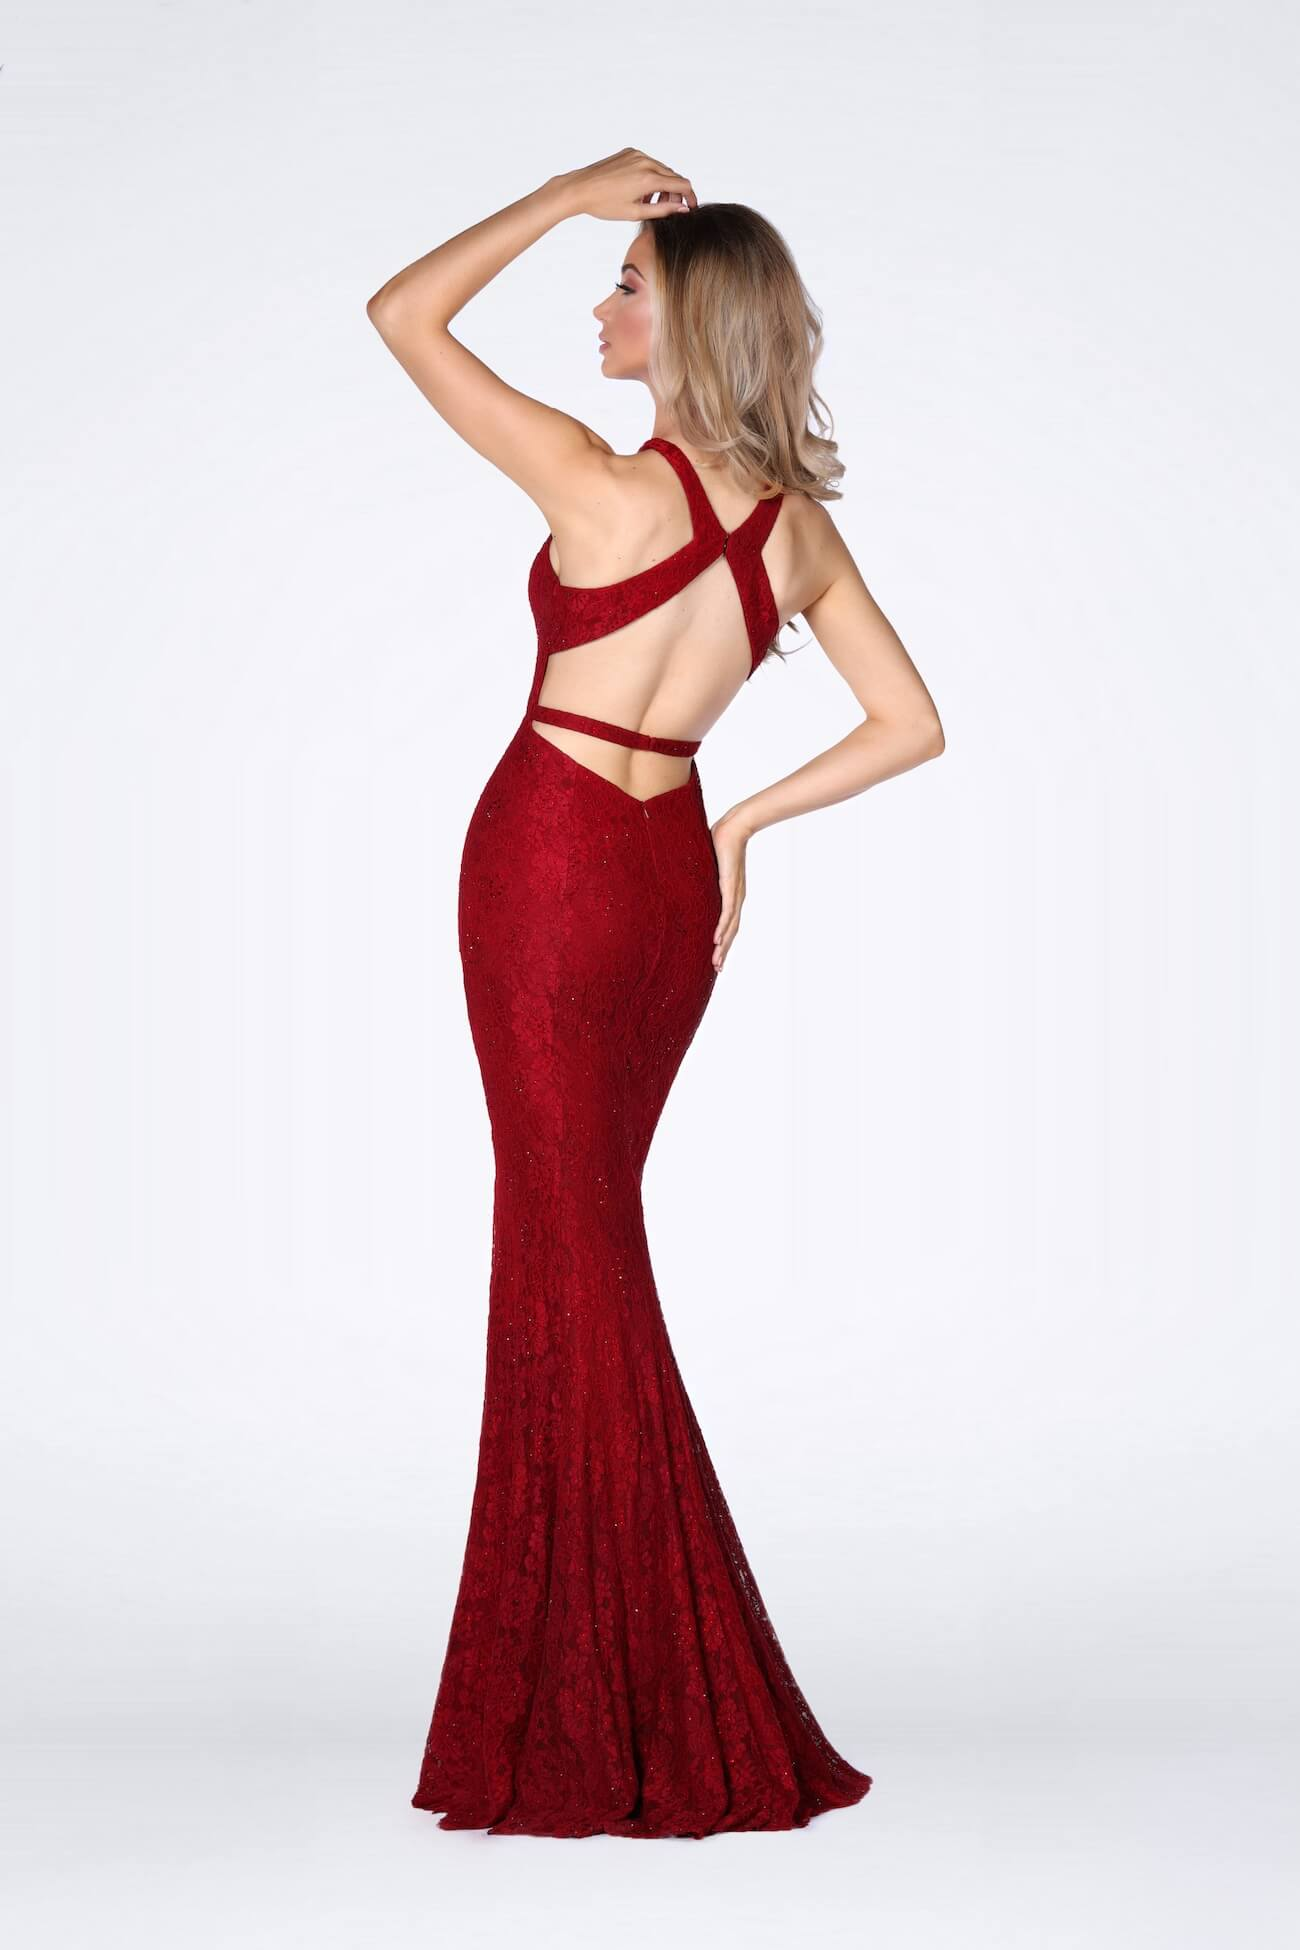 Vienna Red Size 4 Halter Backless Mermaid Dress on Queenly